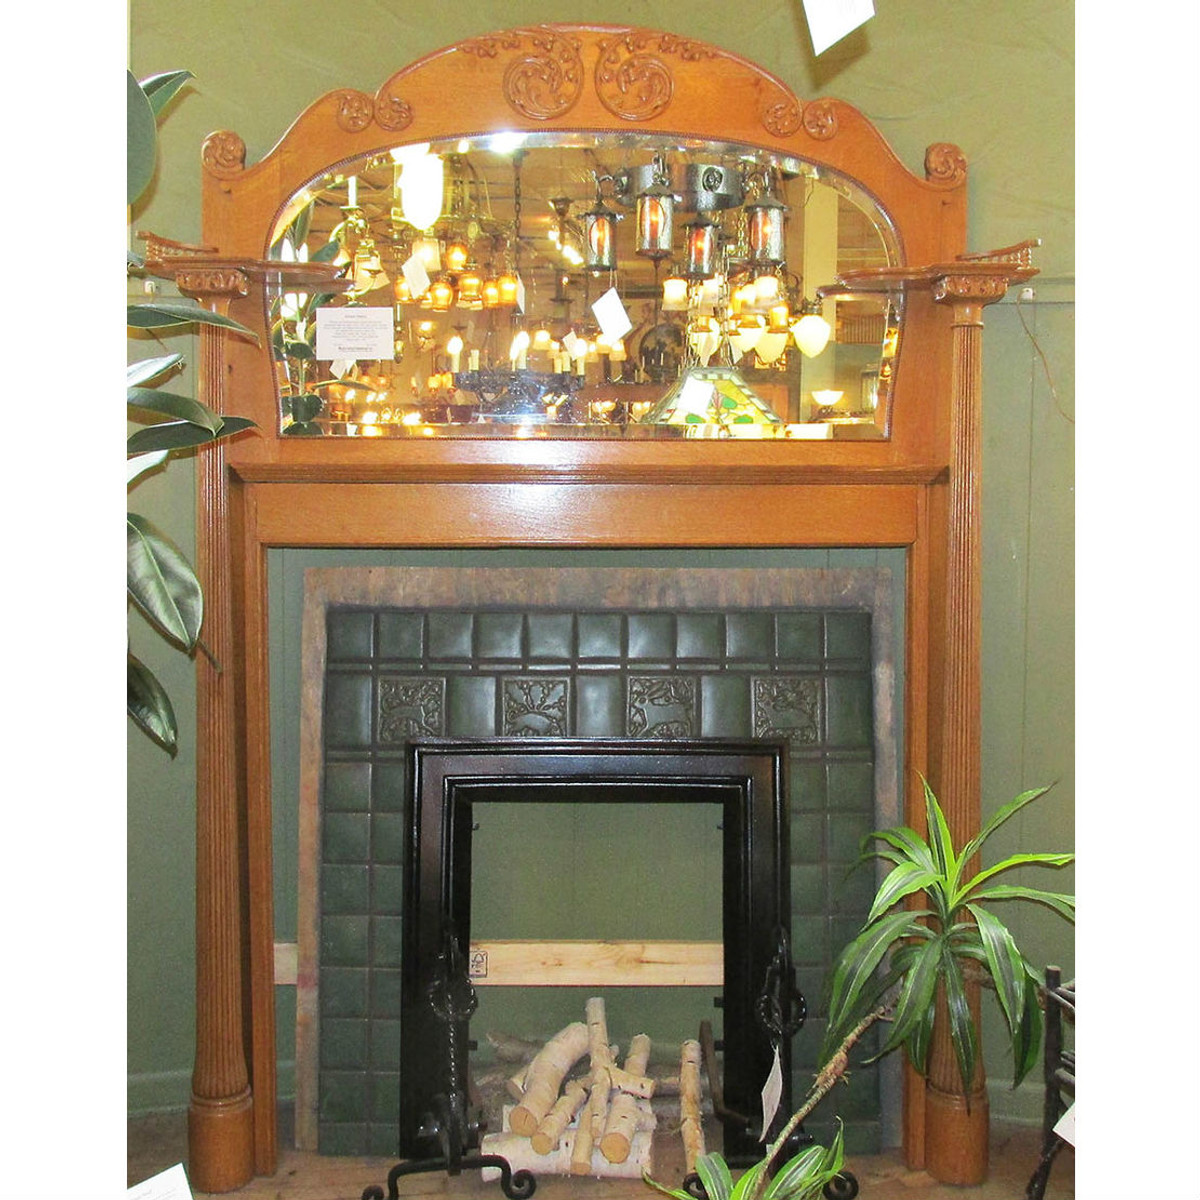 M14035 - Antique Colonial Revival Quartersawn Oak Full Mantel